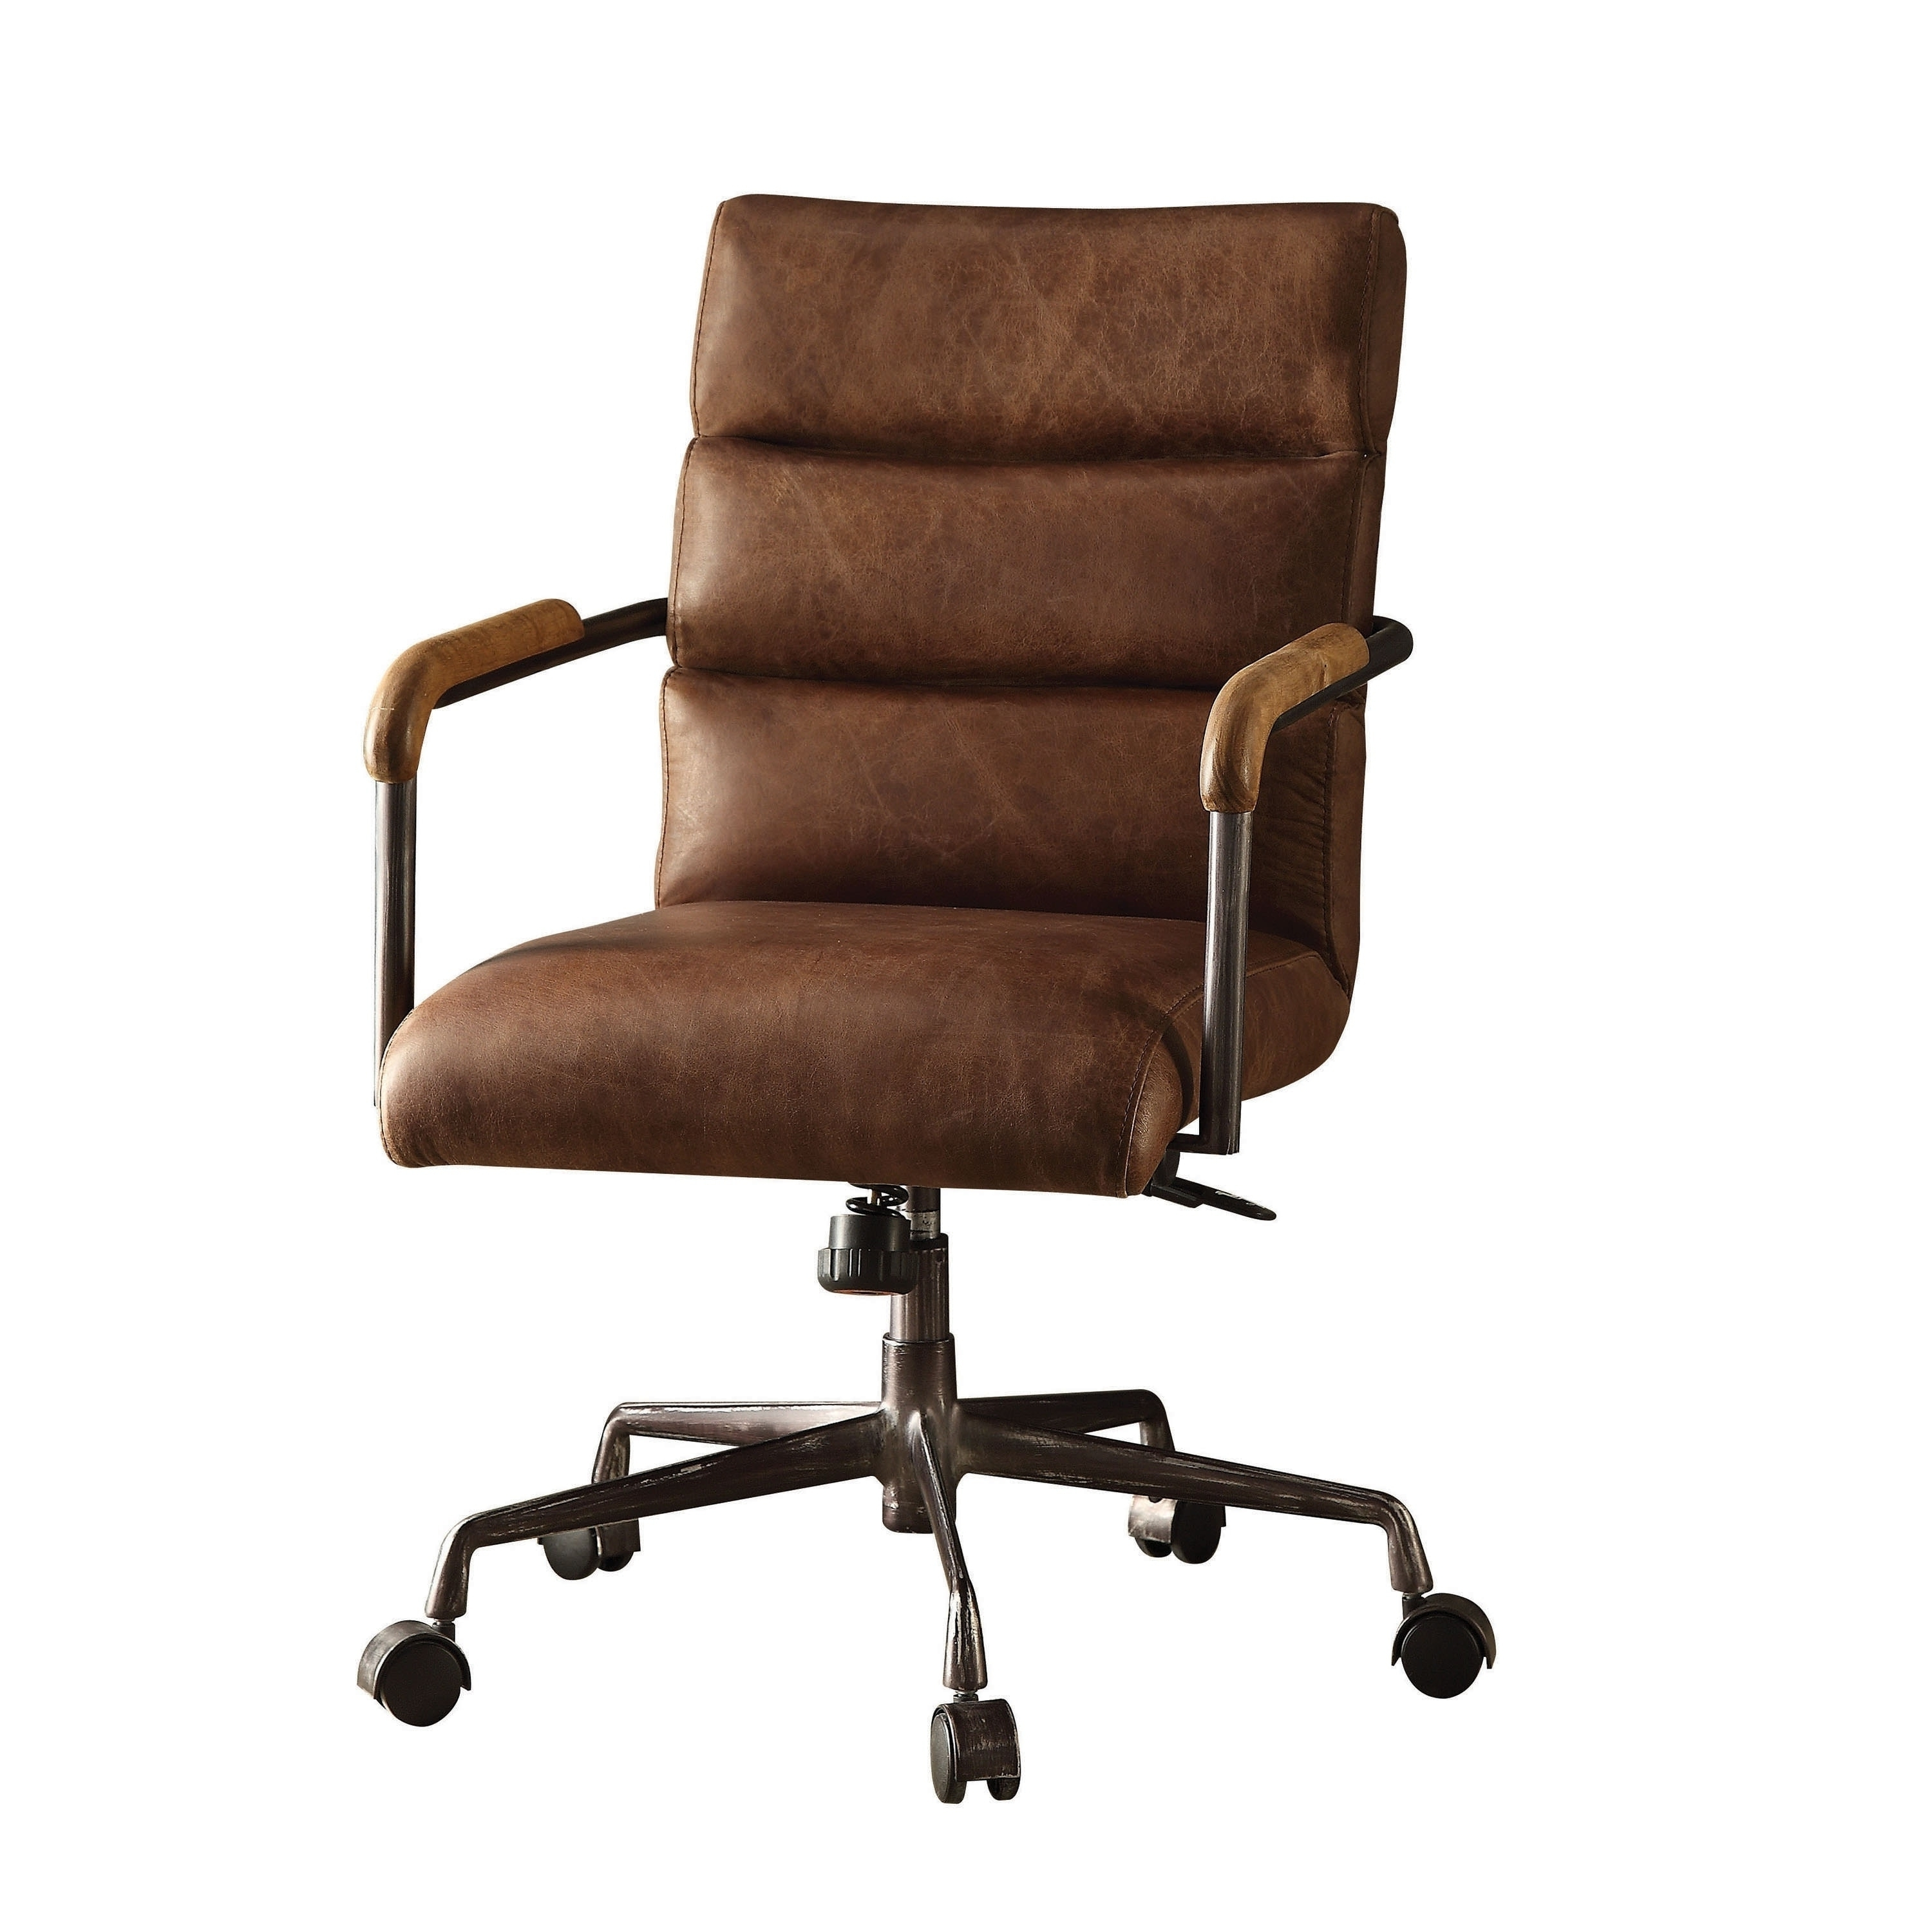 Brown Executive Office Chairs With Regard To Most Up To Date Acme Harith Retro Brown Top Grain Leather Executive Office Chair (View 18 of 20)